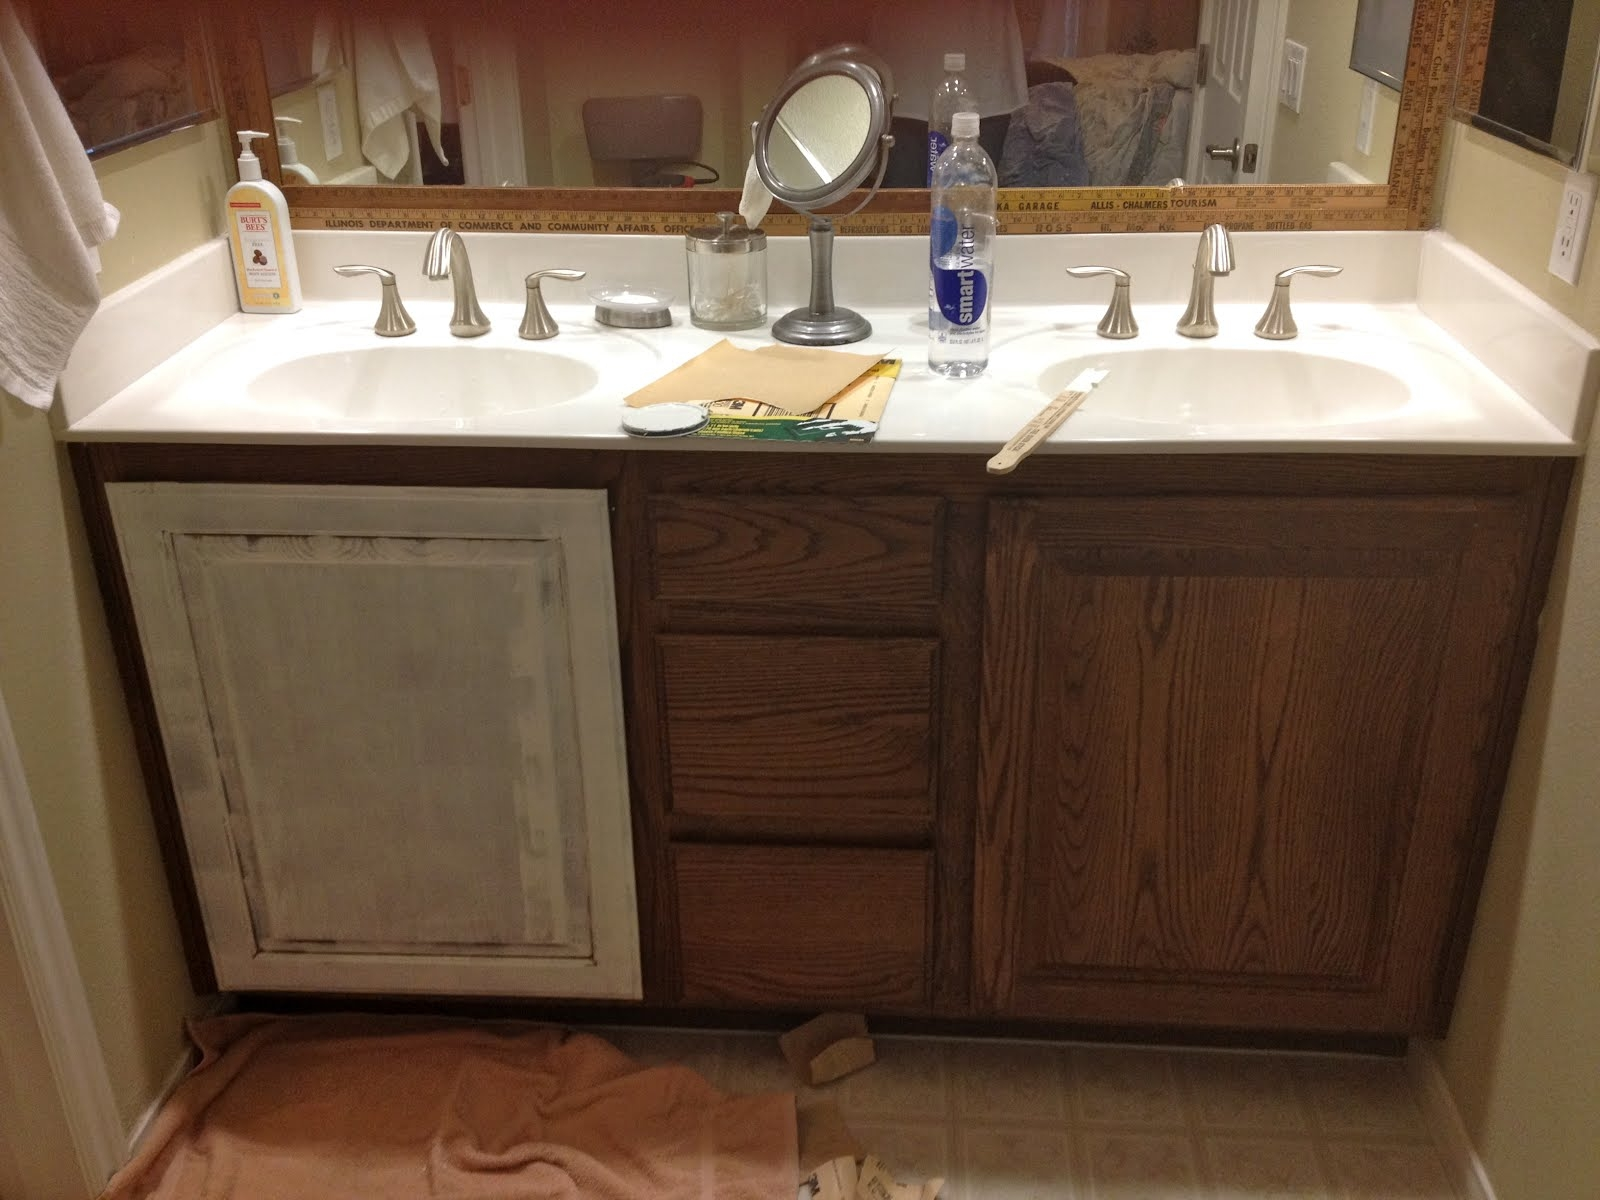 Resurface Bathroom Cabinet Doors